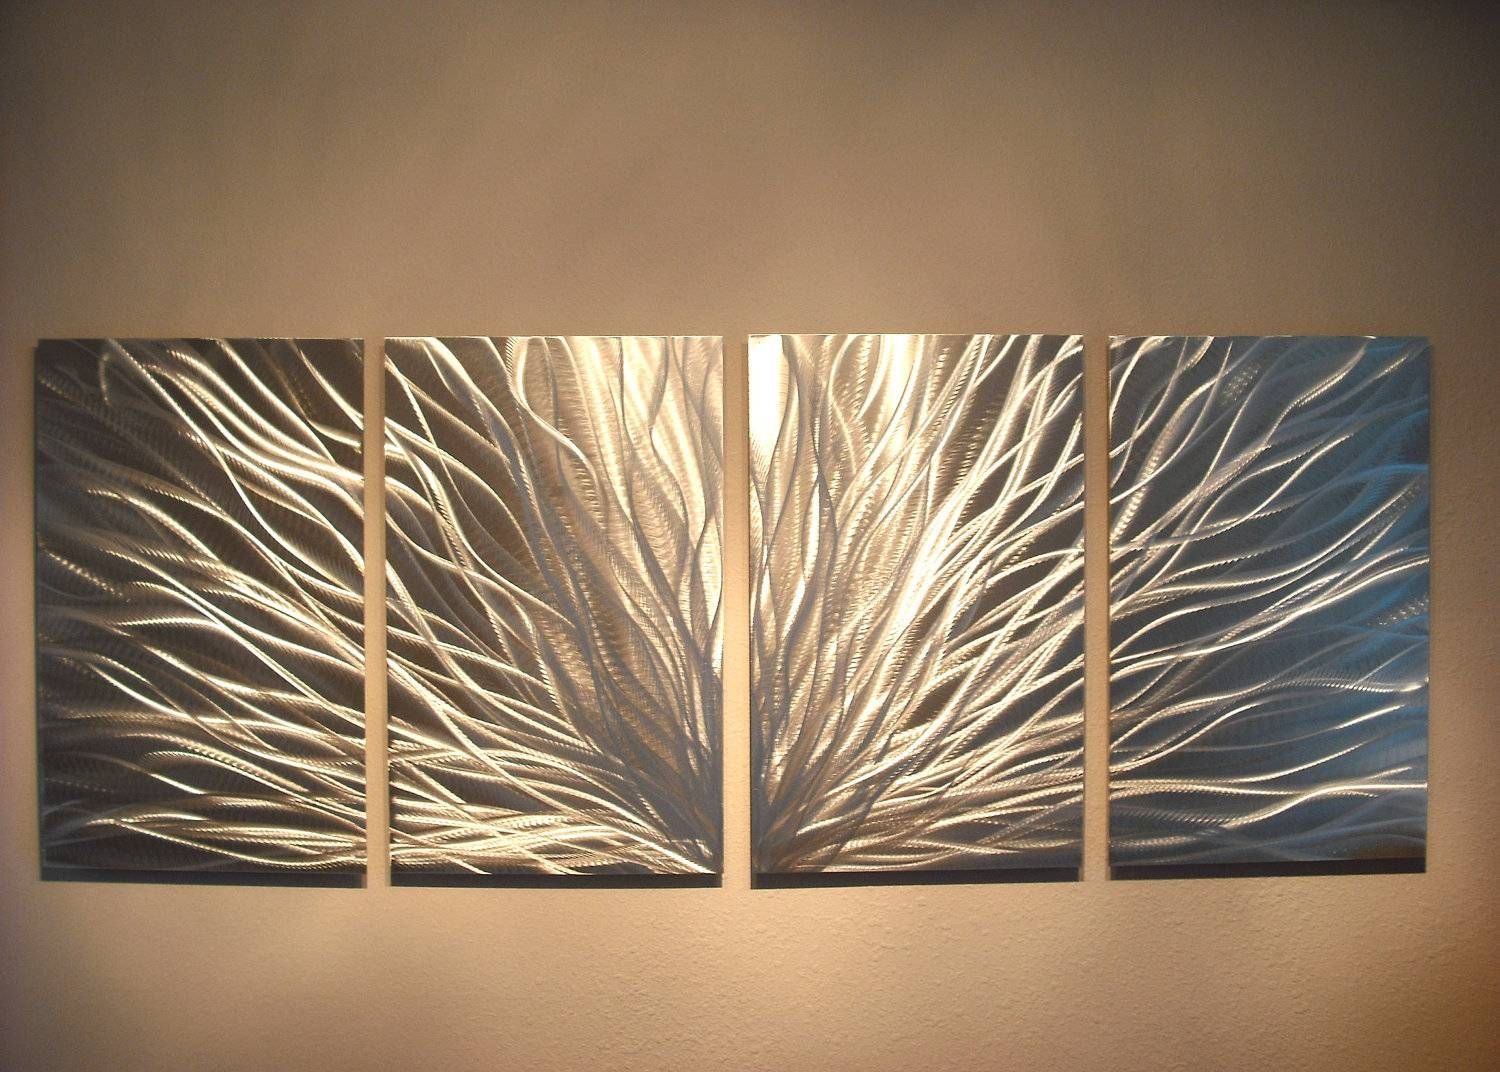 Radiance – Abstract Metal Wall Art Contemporary Modern Decor Regarding 2018 Abstract Metal Wall Art (Gallery 4 of 20)